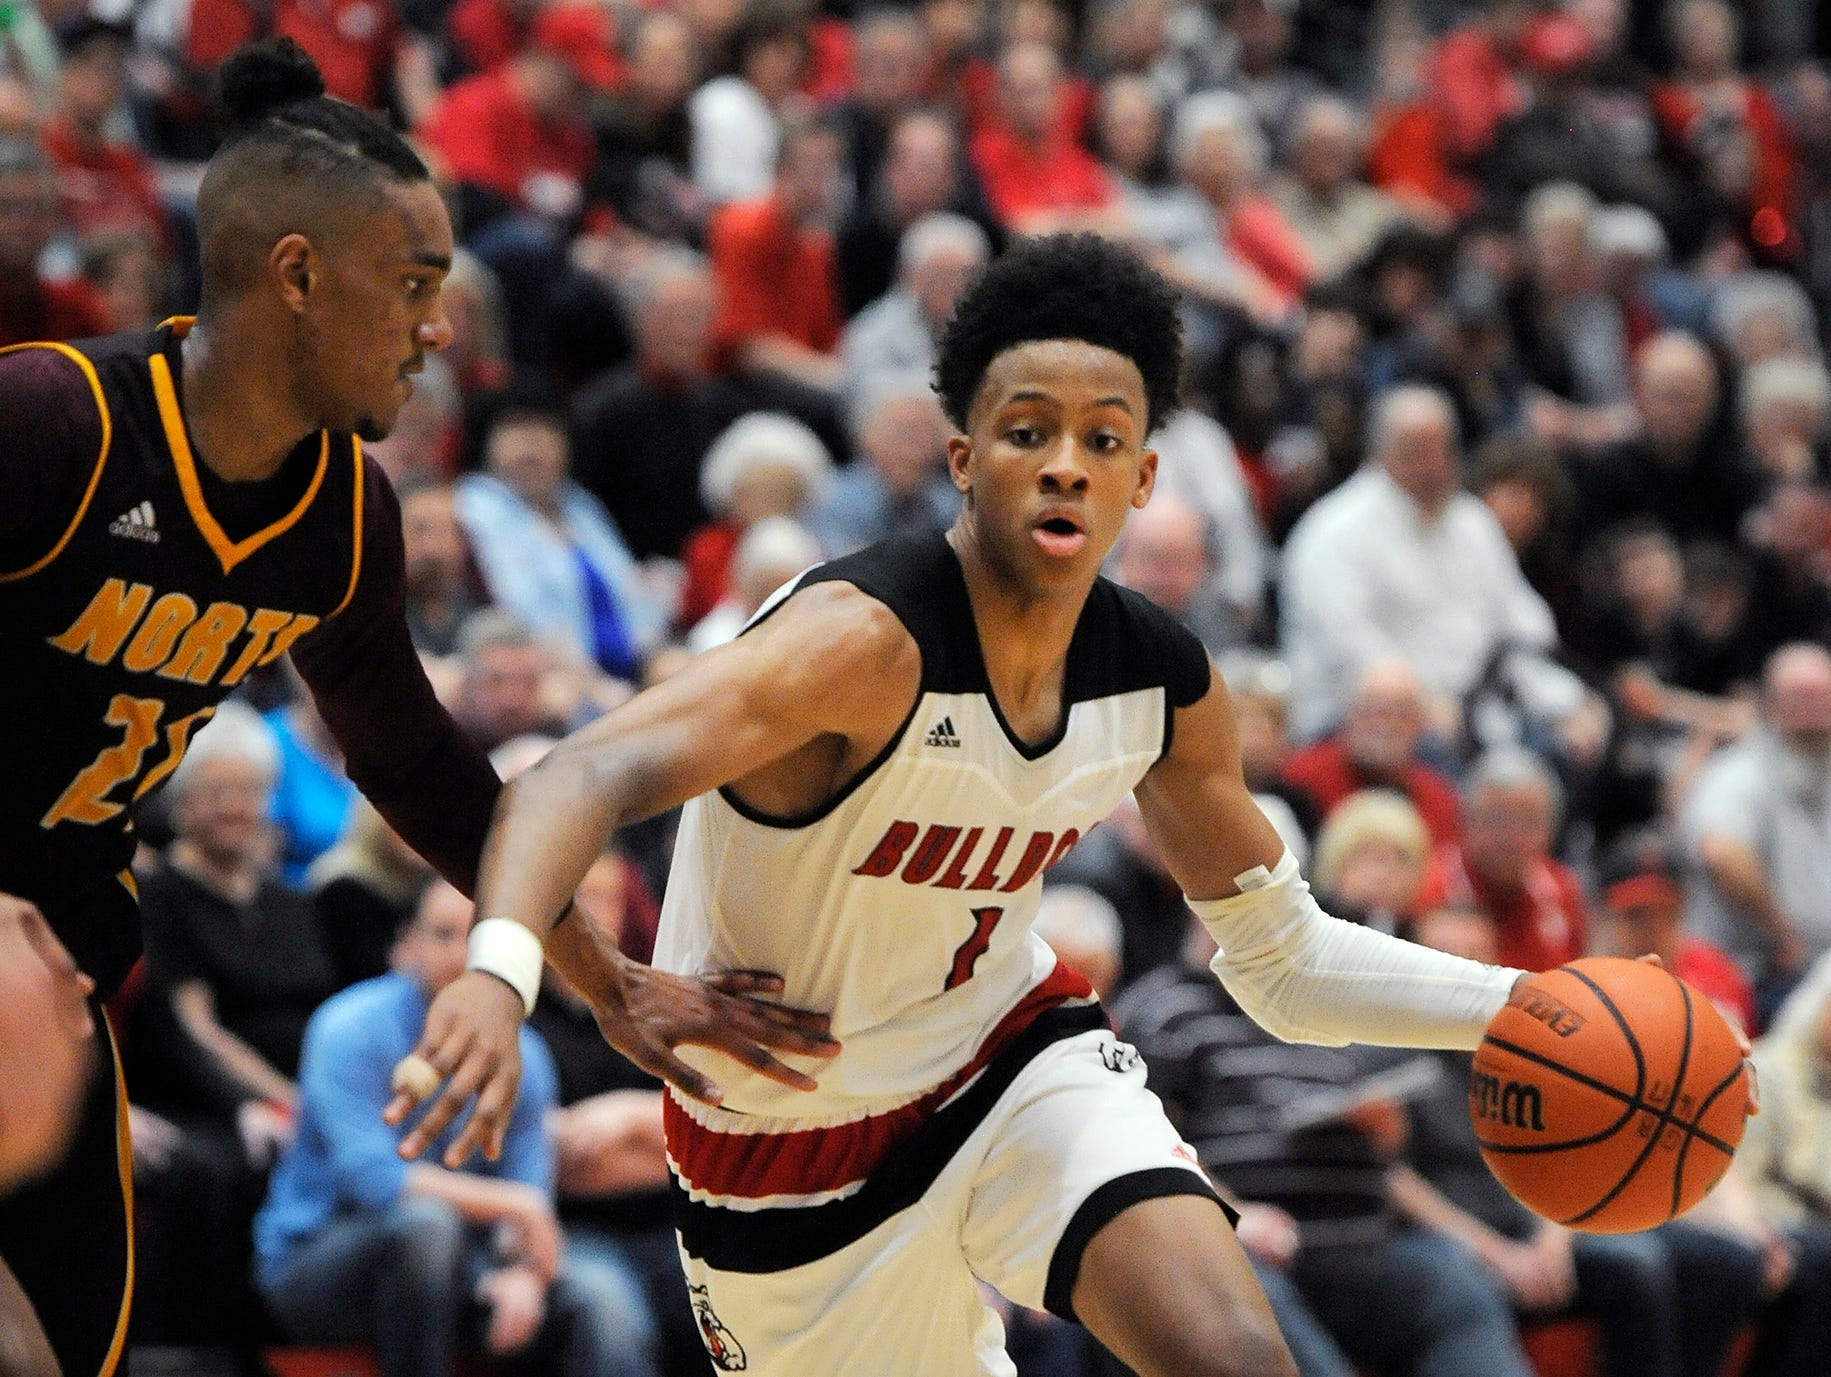 New Albany's Romeo Langford (right) drives against Bloomington North's Musa Jallow (left) on Friday at New Albany High School. Feb. 24, 2017